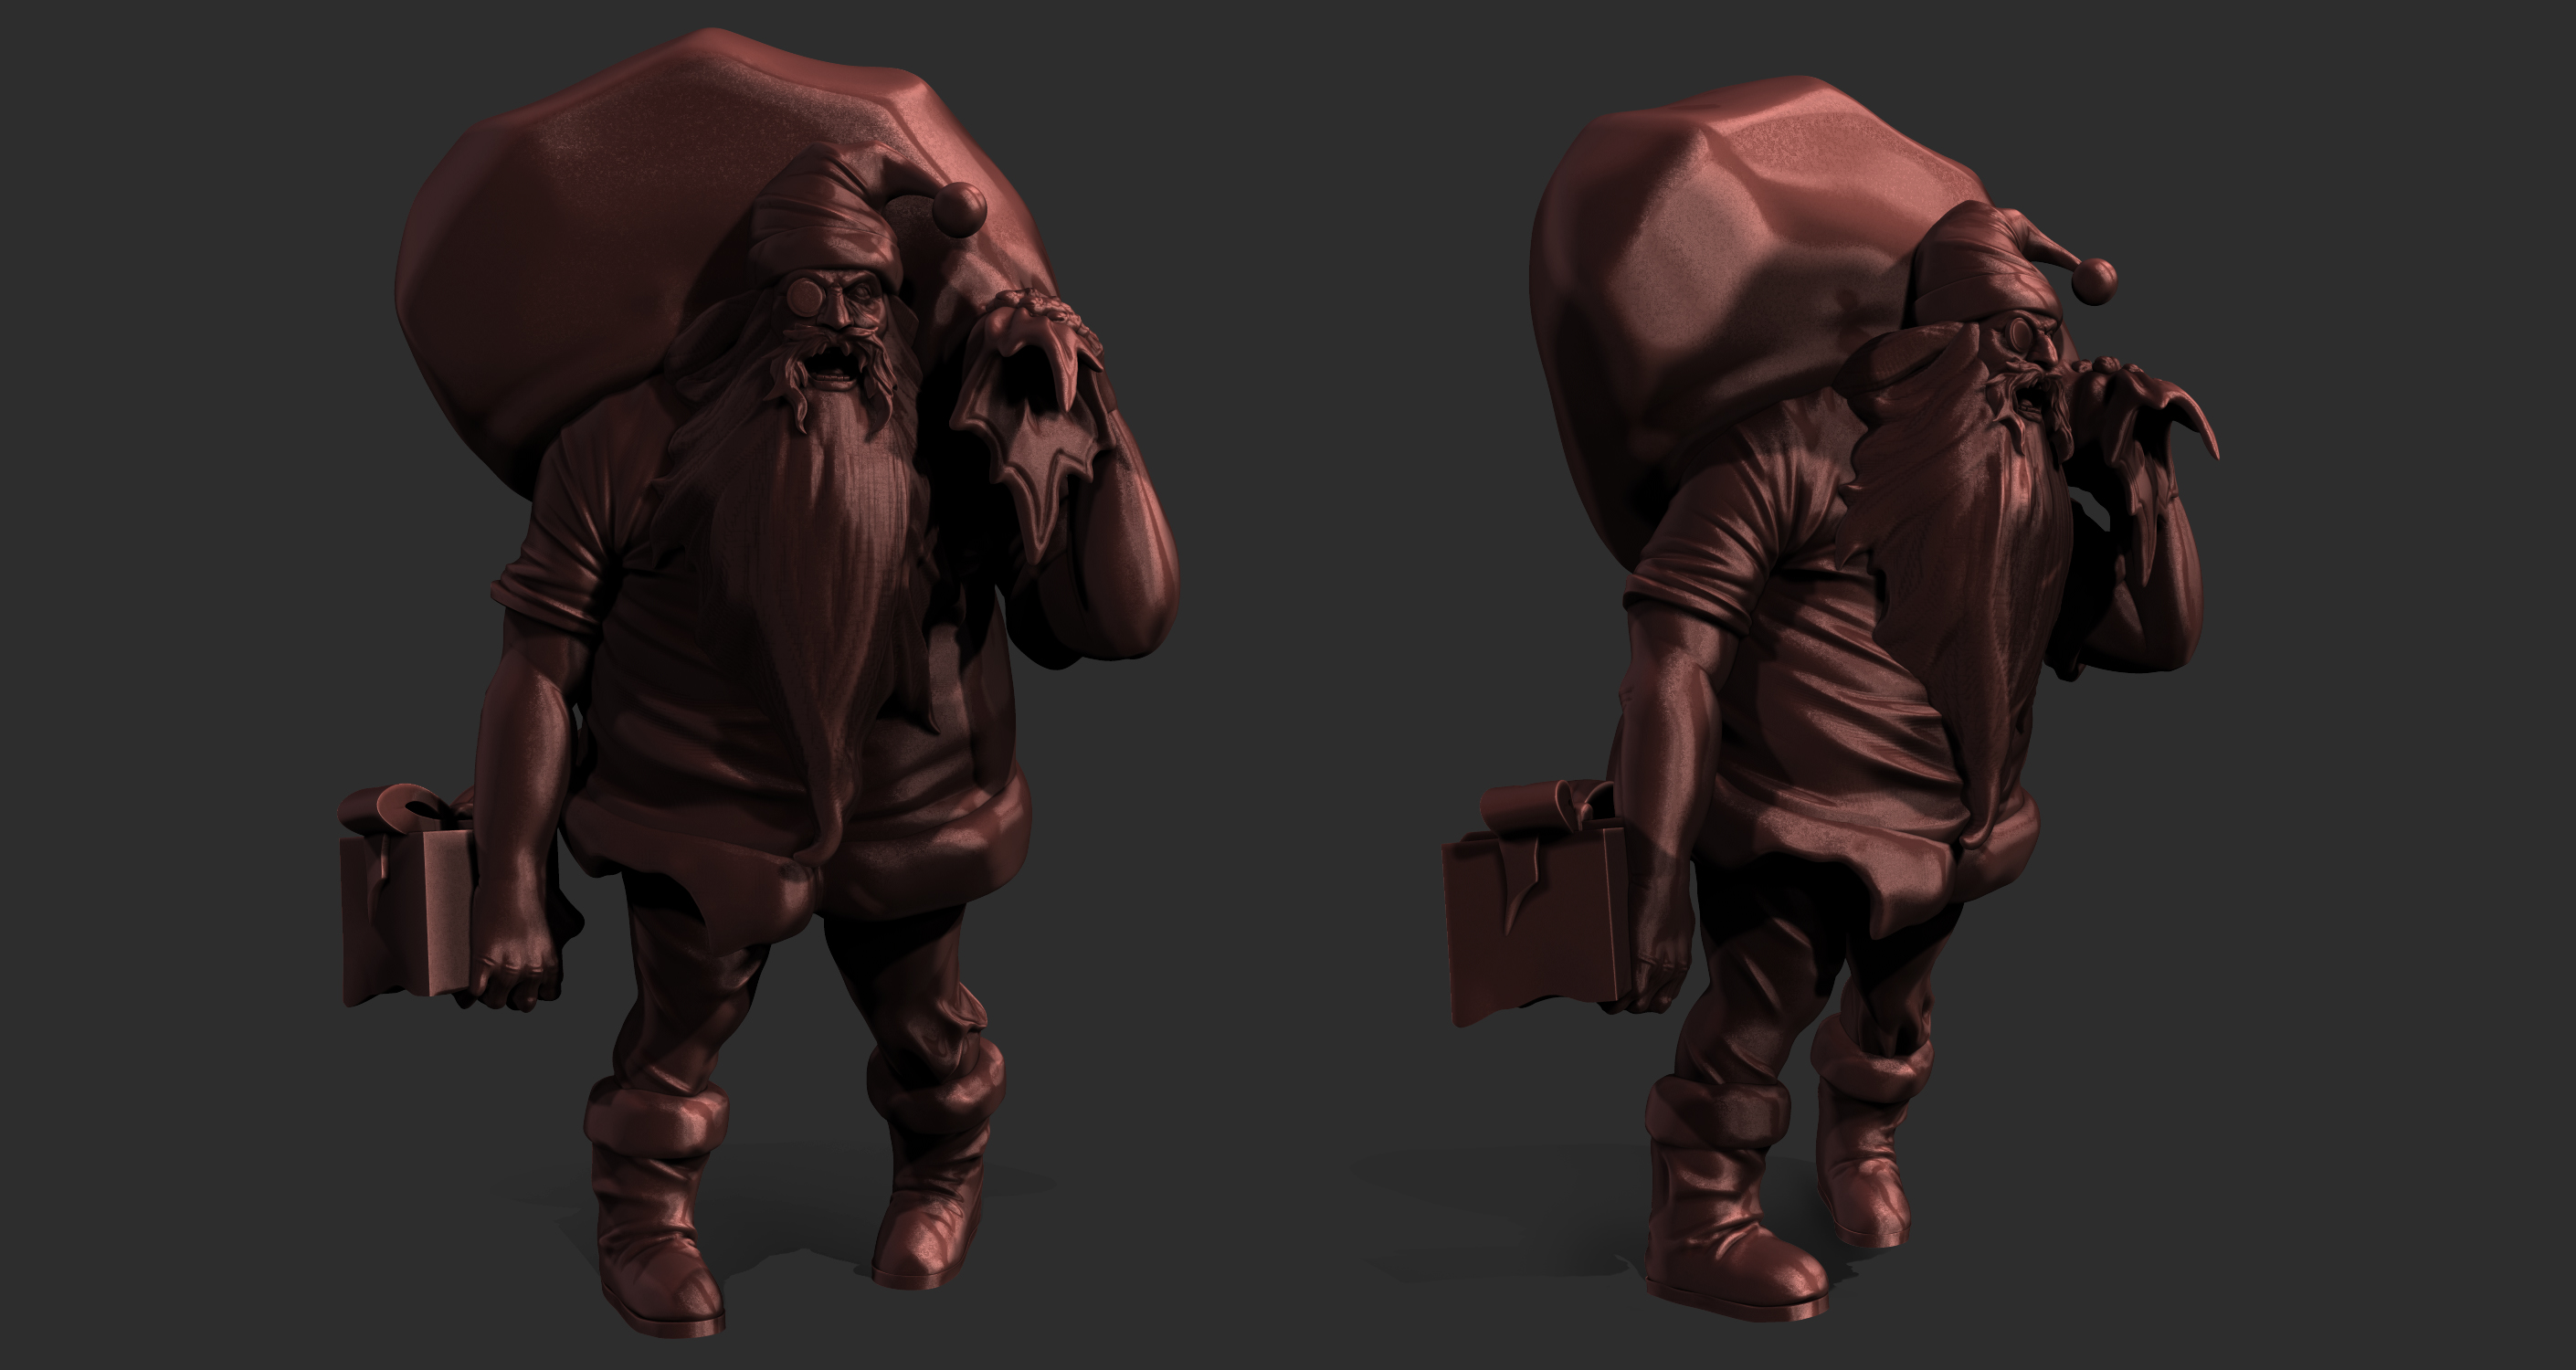 Undead Zombie Santa 3D Model WIP for limited edition figure in red